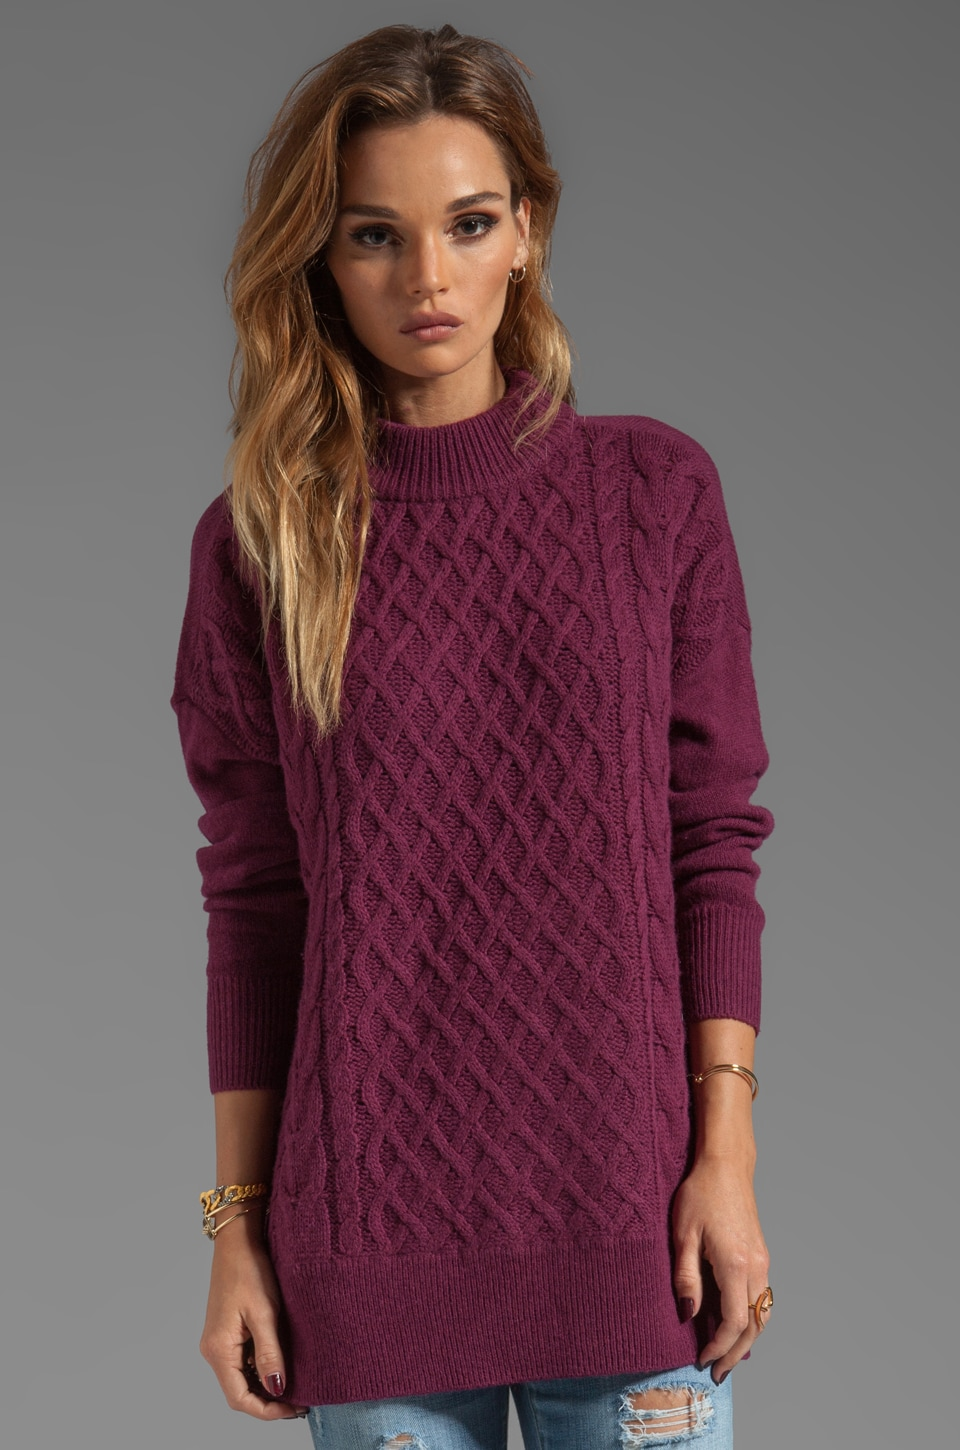 Joie Classic Cable Bryanne Sweater in Shiraz